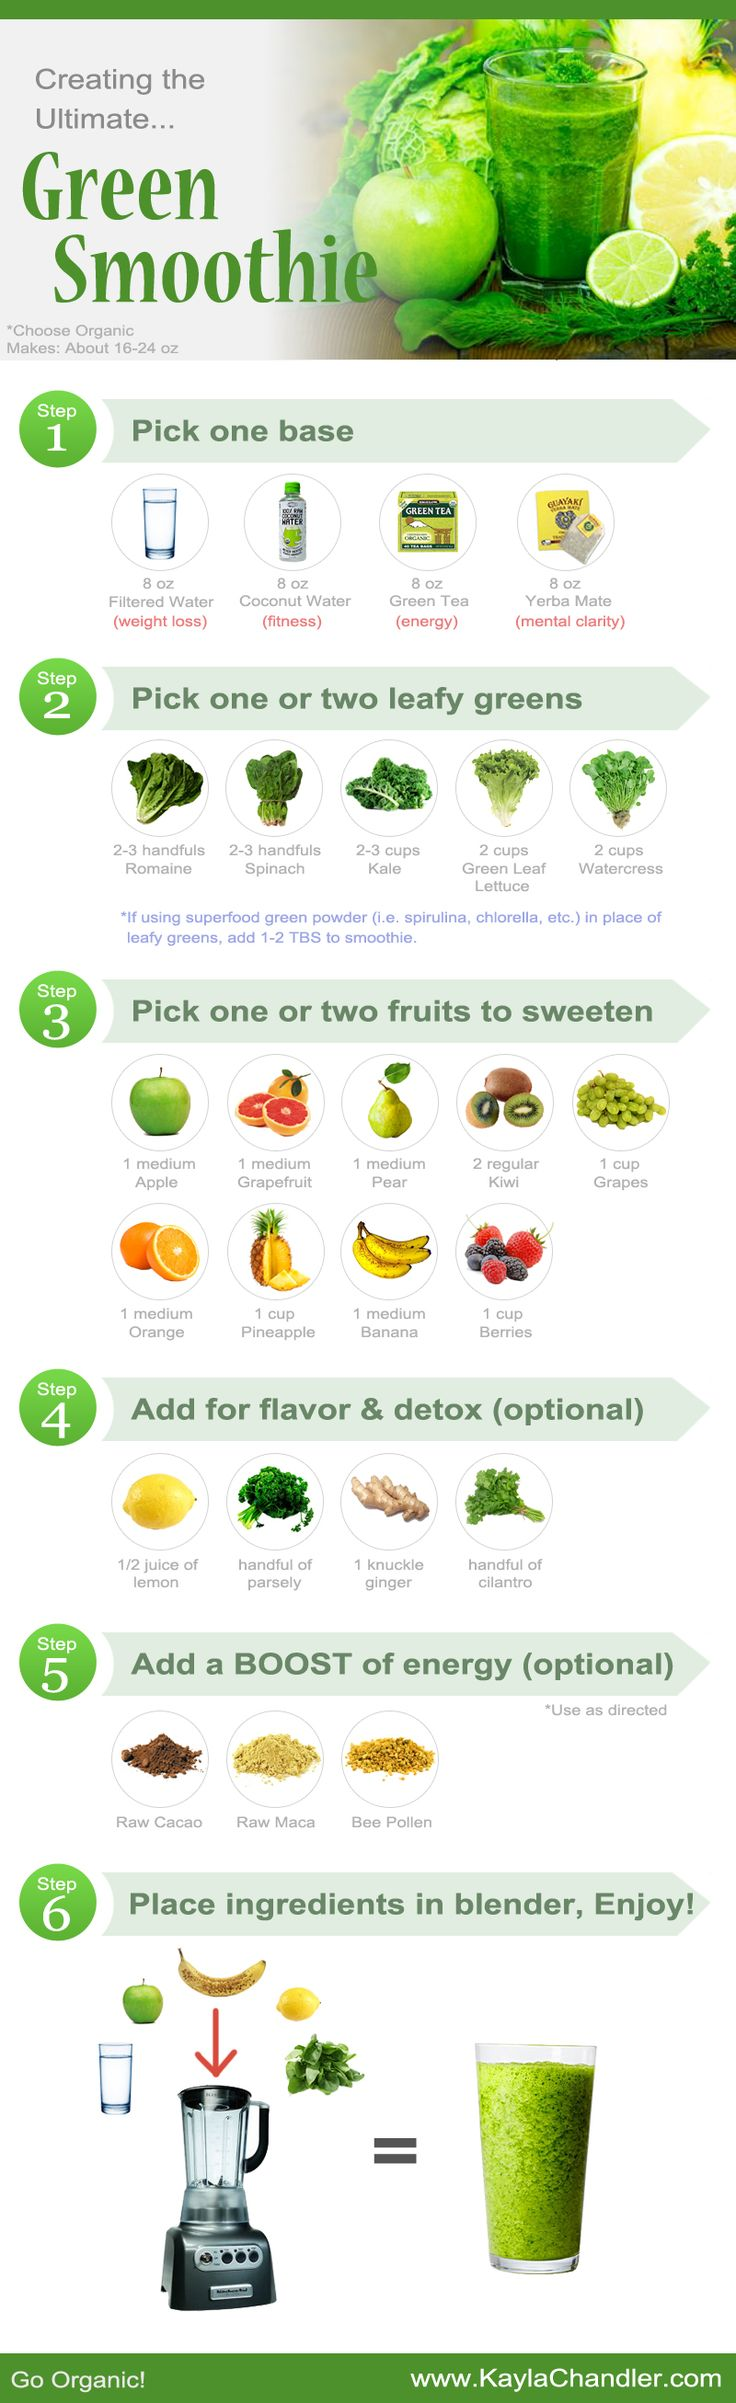 Basics for Creating the Ultimate Green Smoothie with Vitamix @ http://howtoloseweightfaster.siterubix.com/best-blender-is-vitamix/